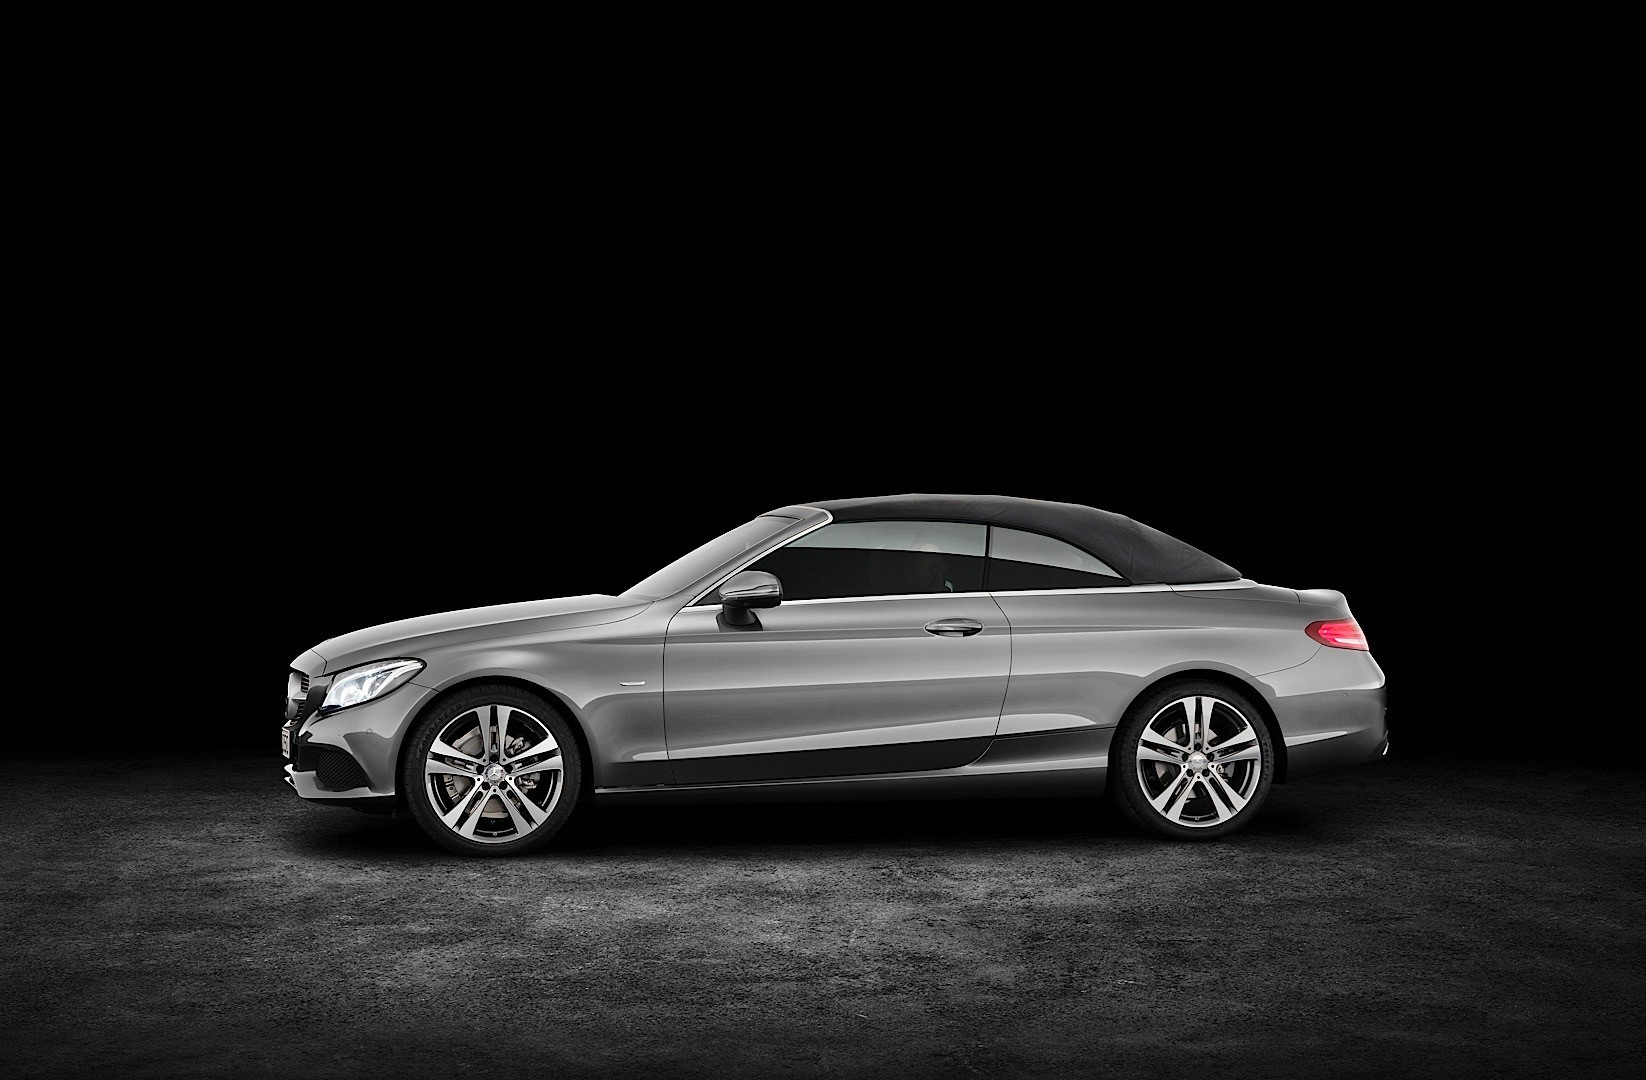 https://s1.cdn.autoevolution.com/images/news/gallery/2017-mercedes-benz-c-class-cabriolet-a205-priced-in-the-united-kingdom_2.jpg